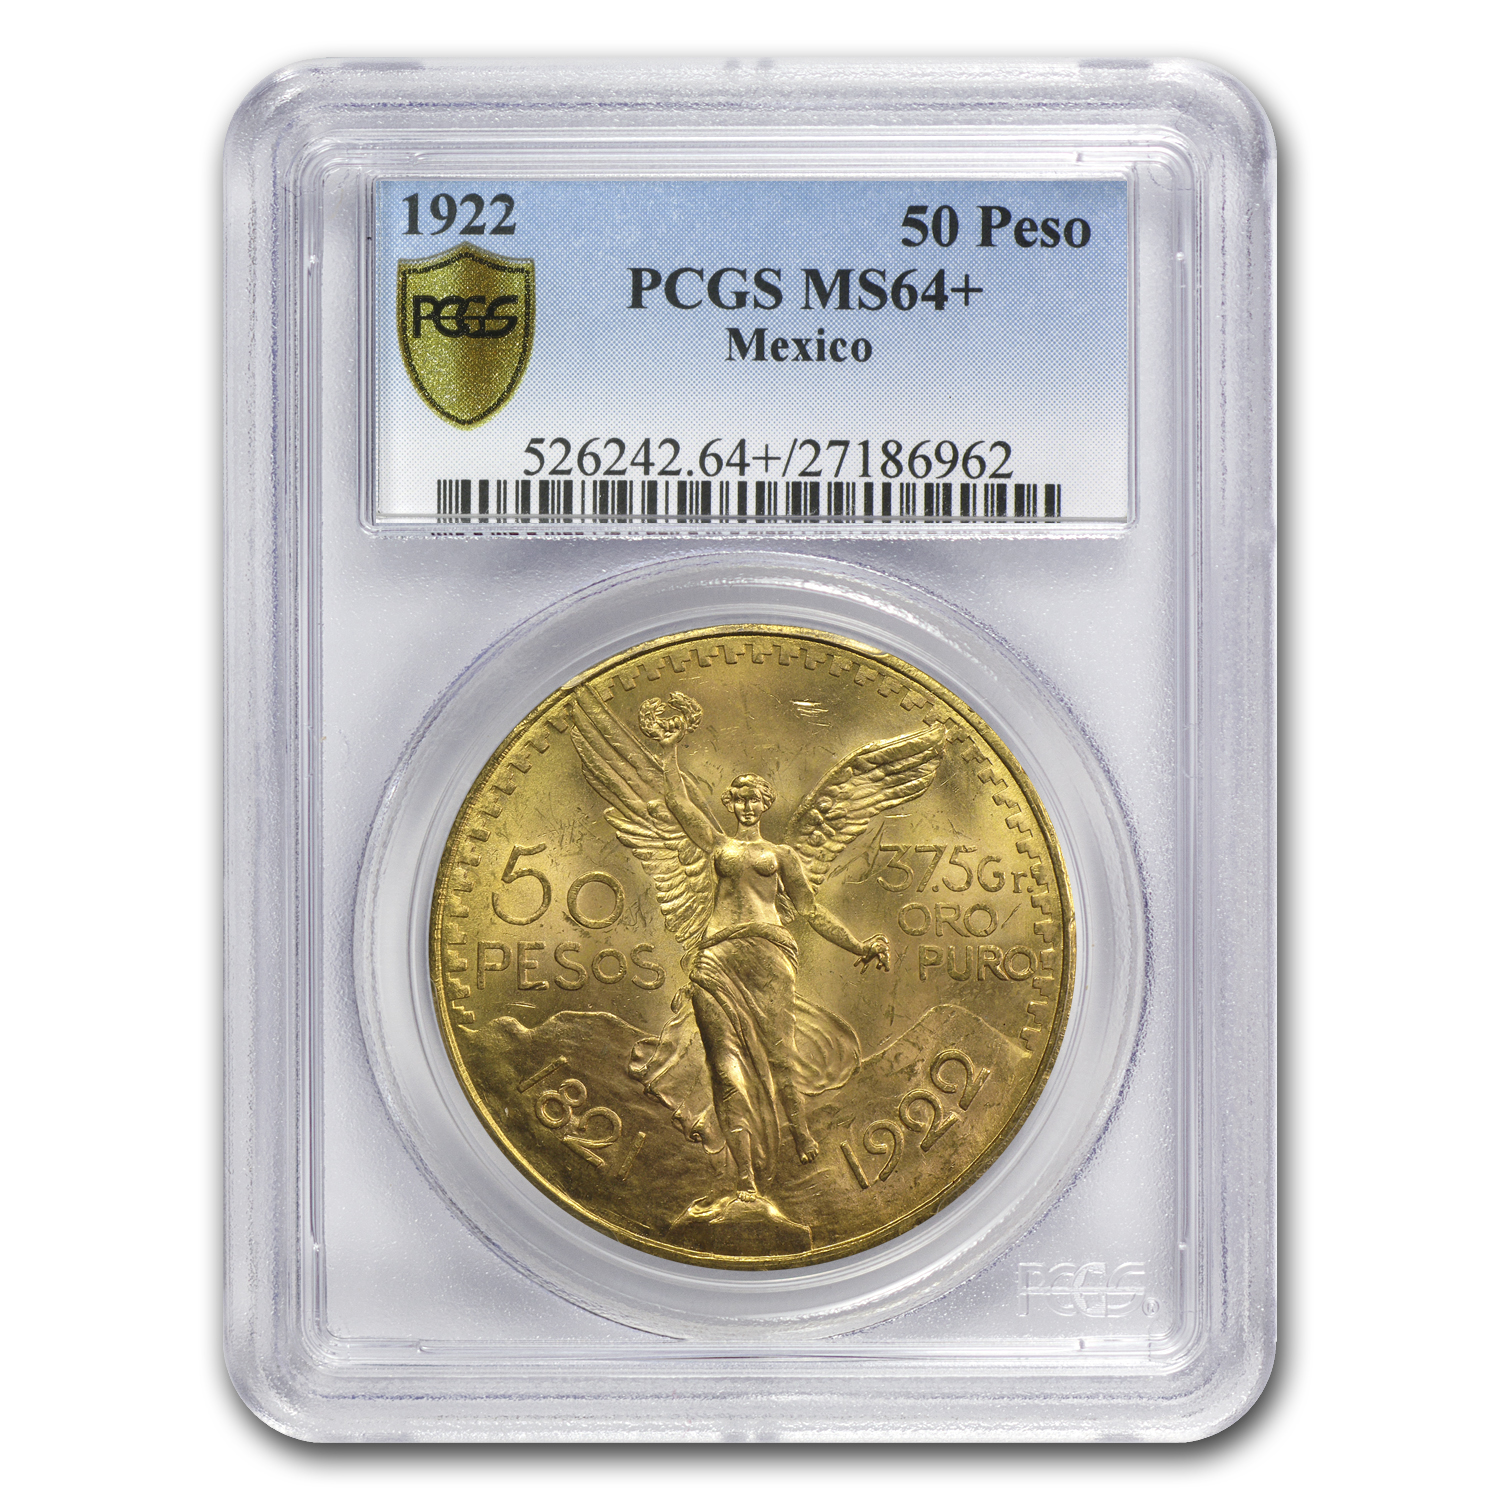 Mexico 1922 50 Pesos Gold Coin - MS-64+ PCGS (Secure Plus!)